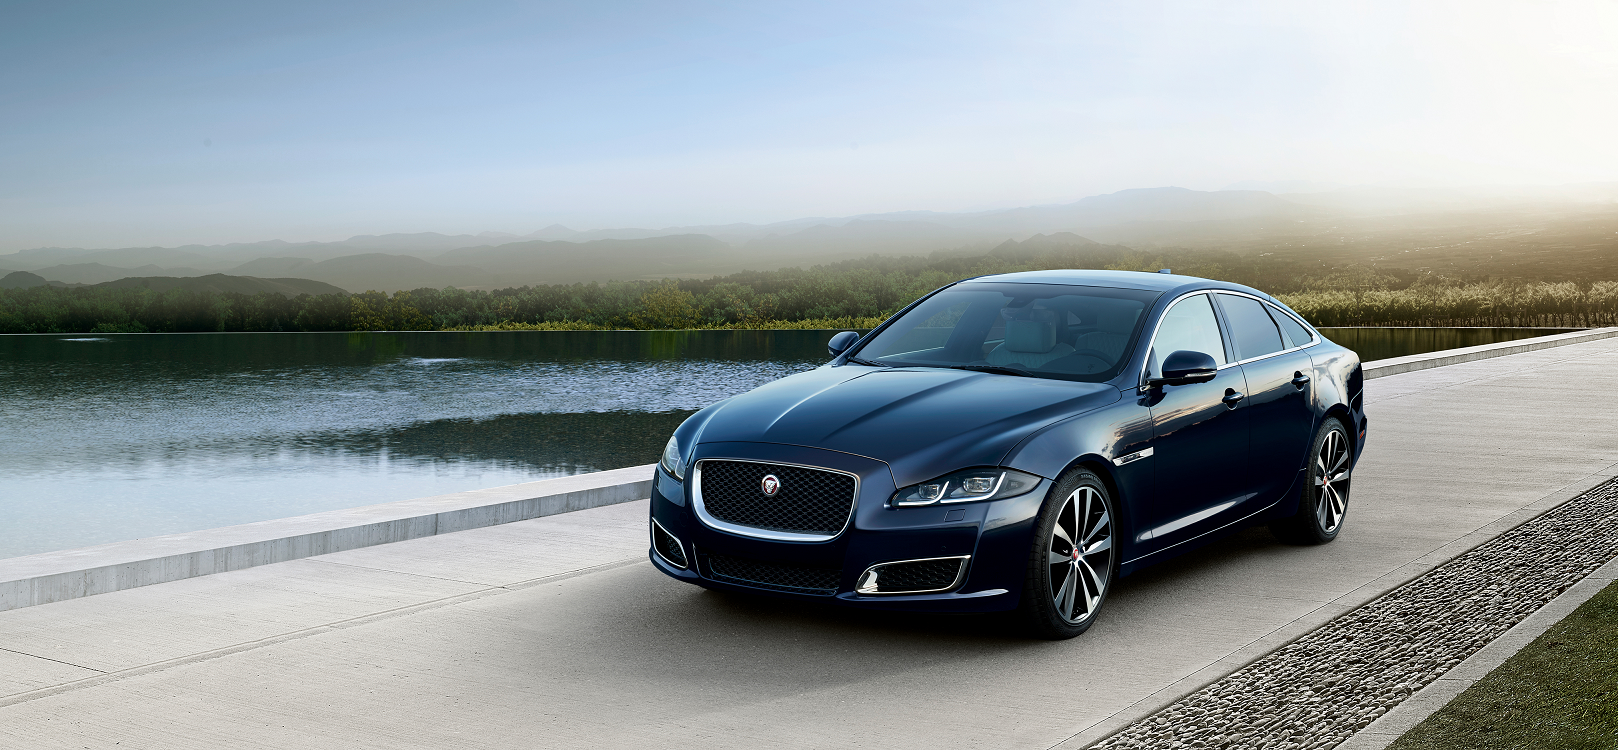 Jaguar Repair and Maintenance in Exeter, NH